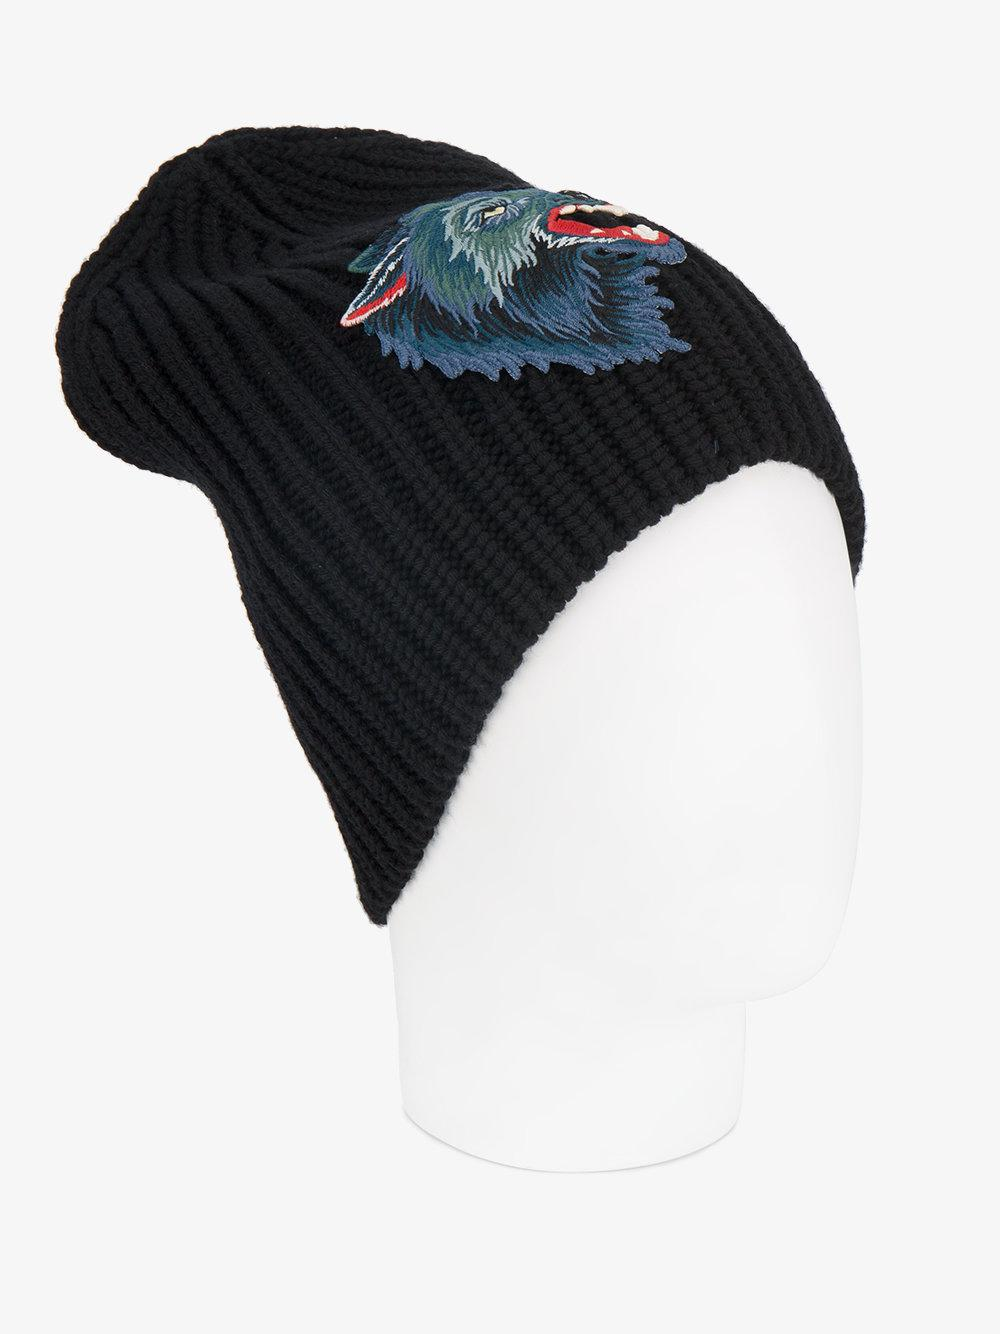 227b22c769b Lyst - Gucci Knitted Wolf Hat in Blue for Men